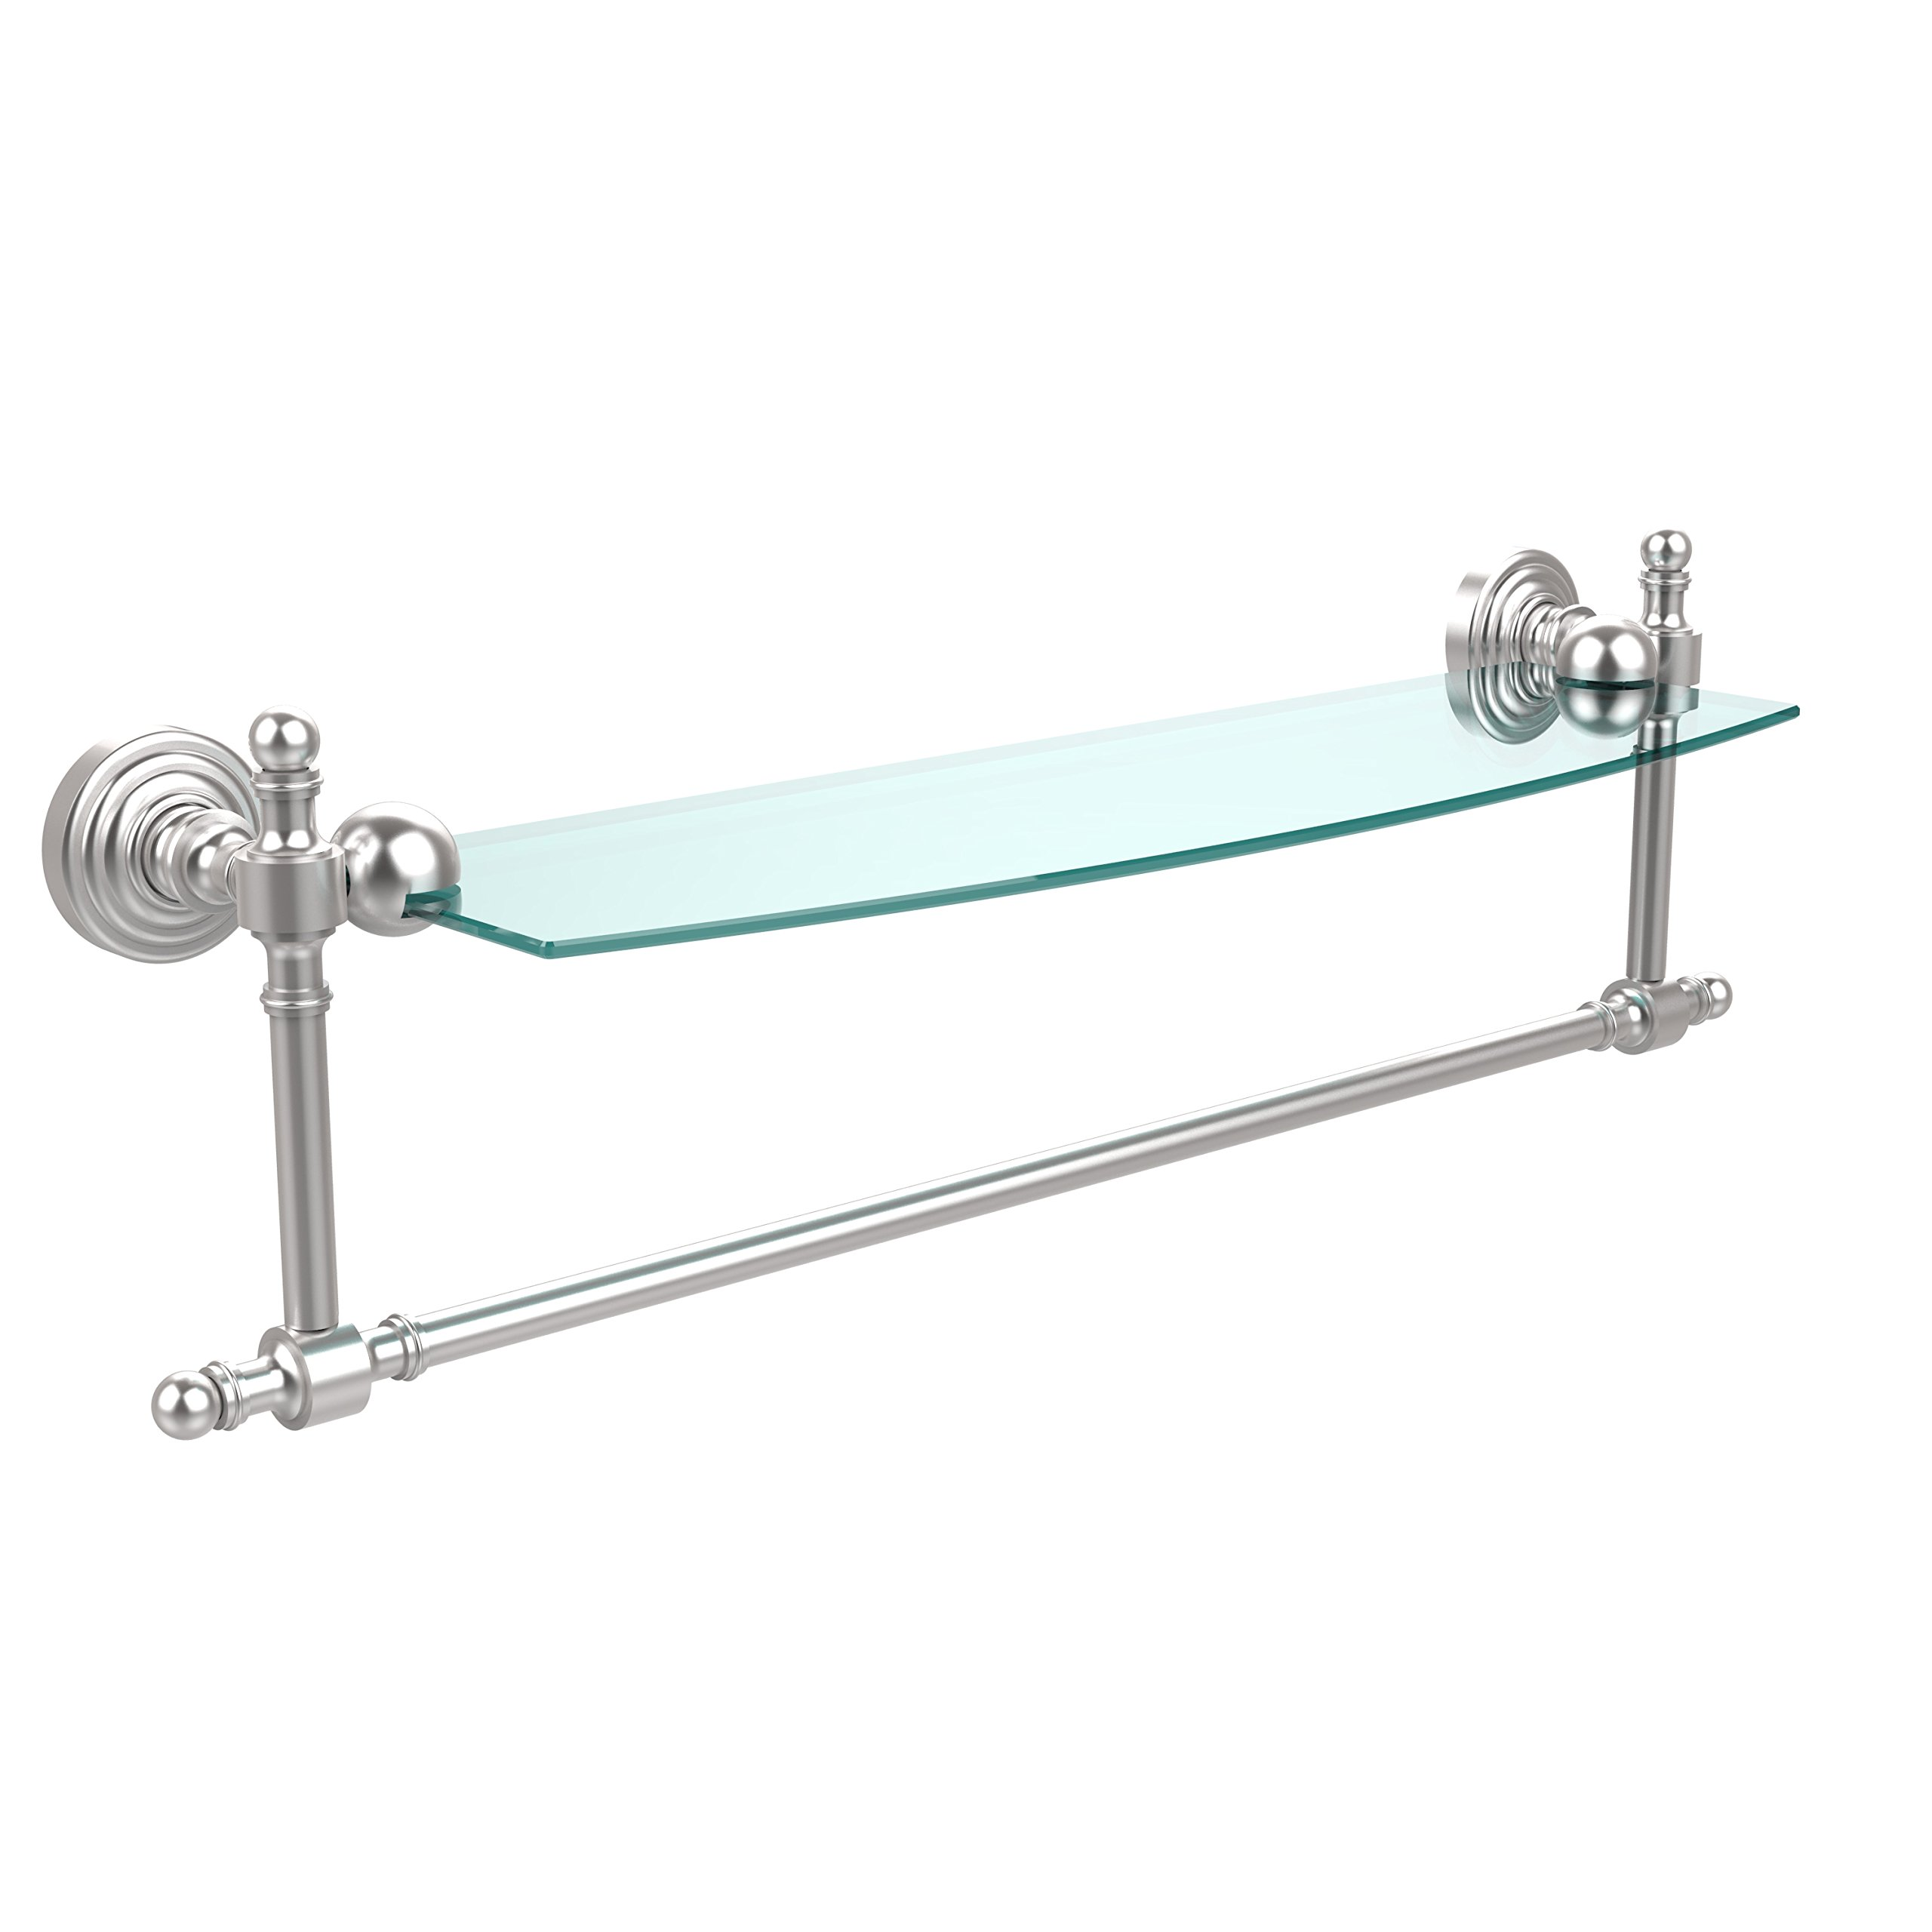 Allied Brass RW-33TB/18-SCH Retro Wave Collection 18 Inch Glass Vanity Shelf with Integrated Towel Bar, Satin Chrome